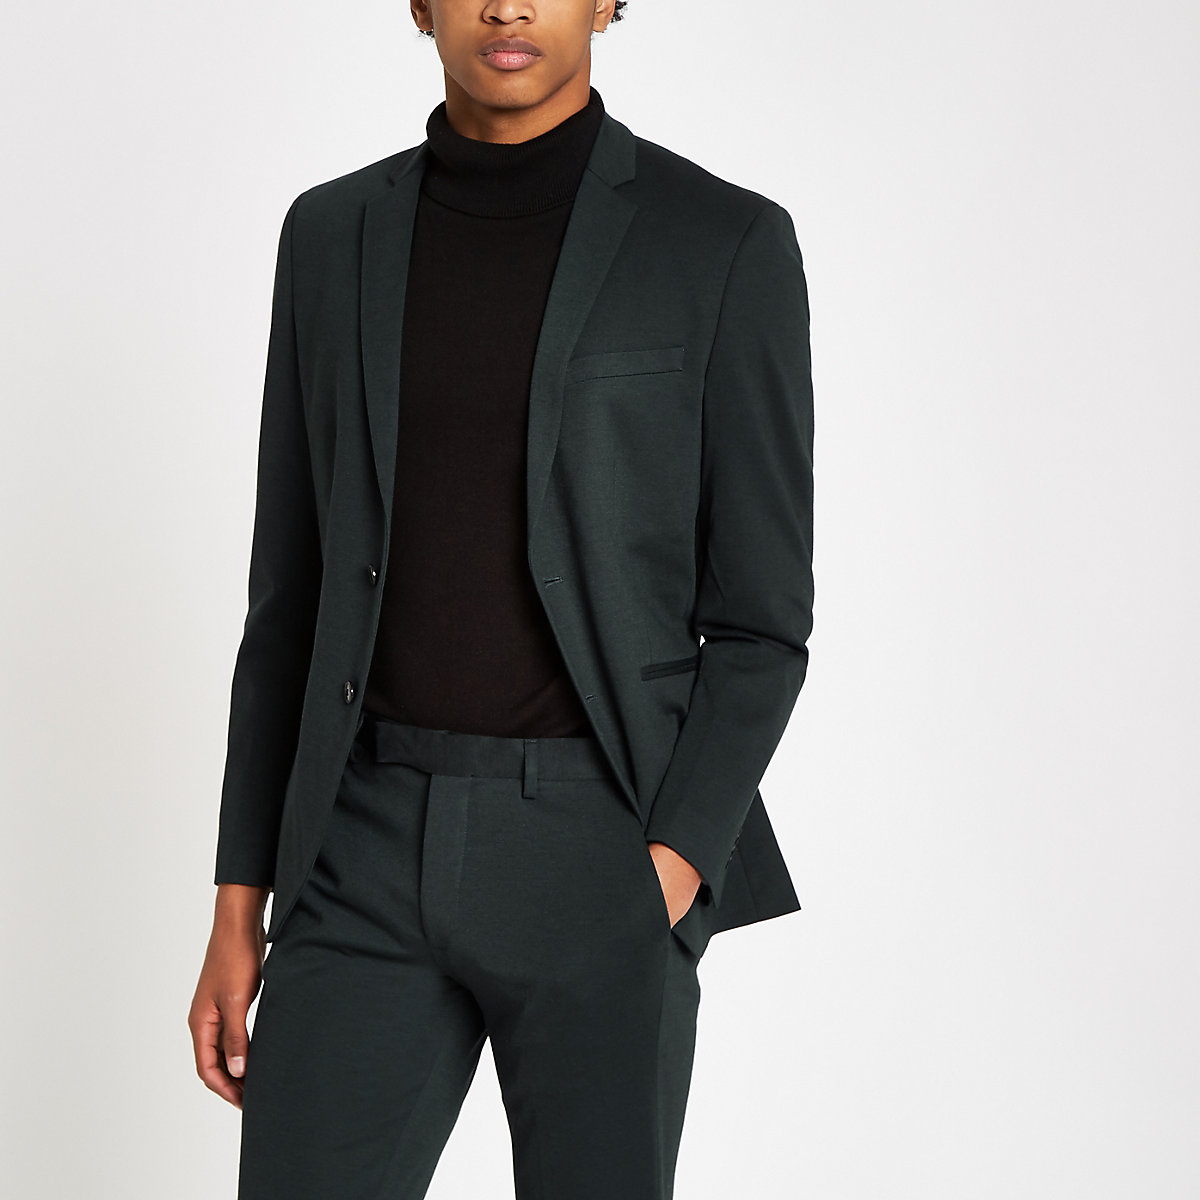 Jack & Jones green suit jacket